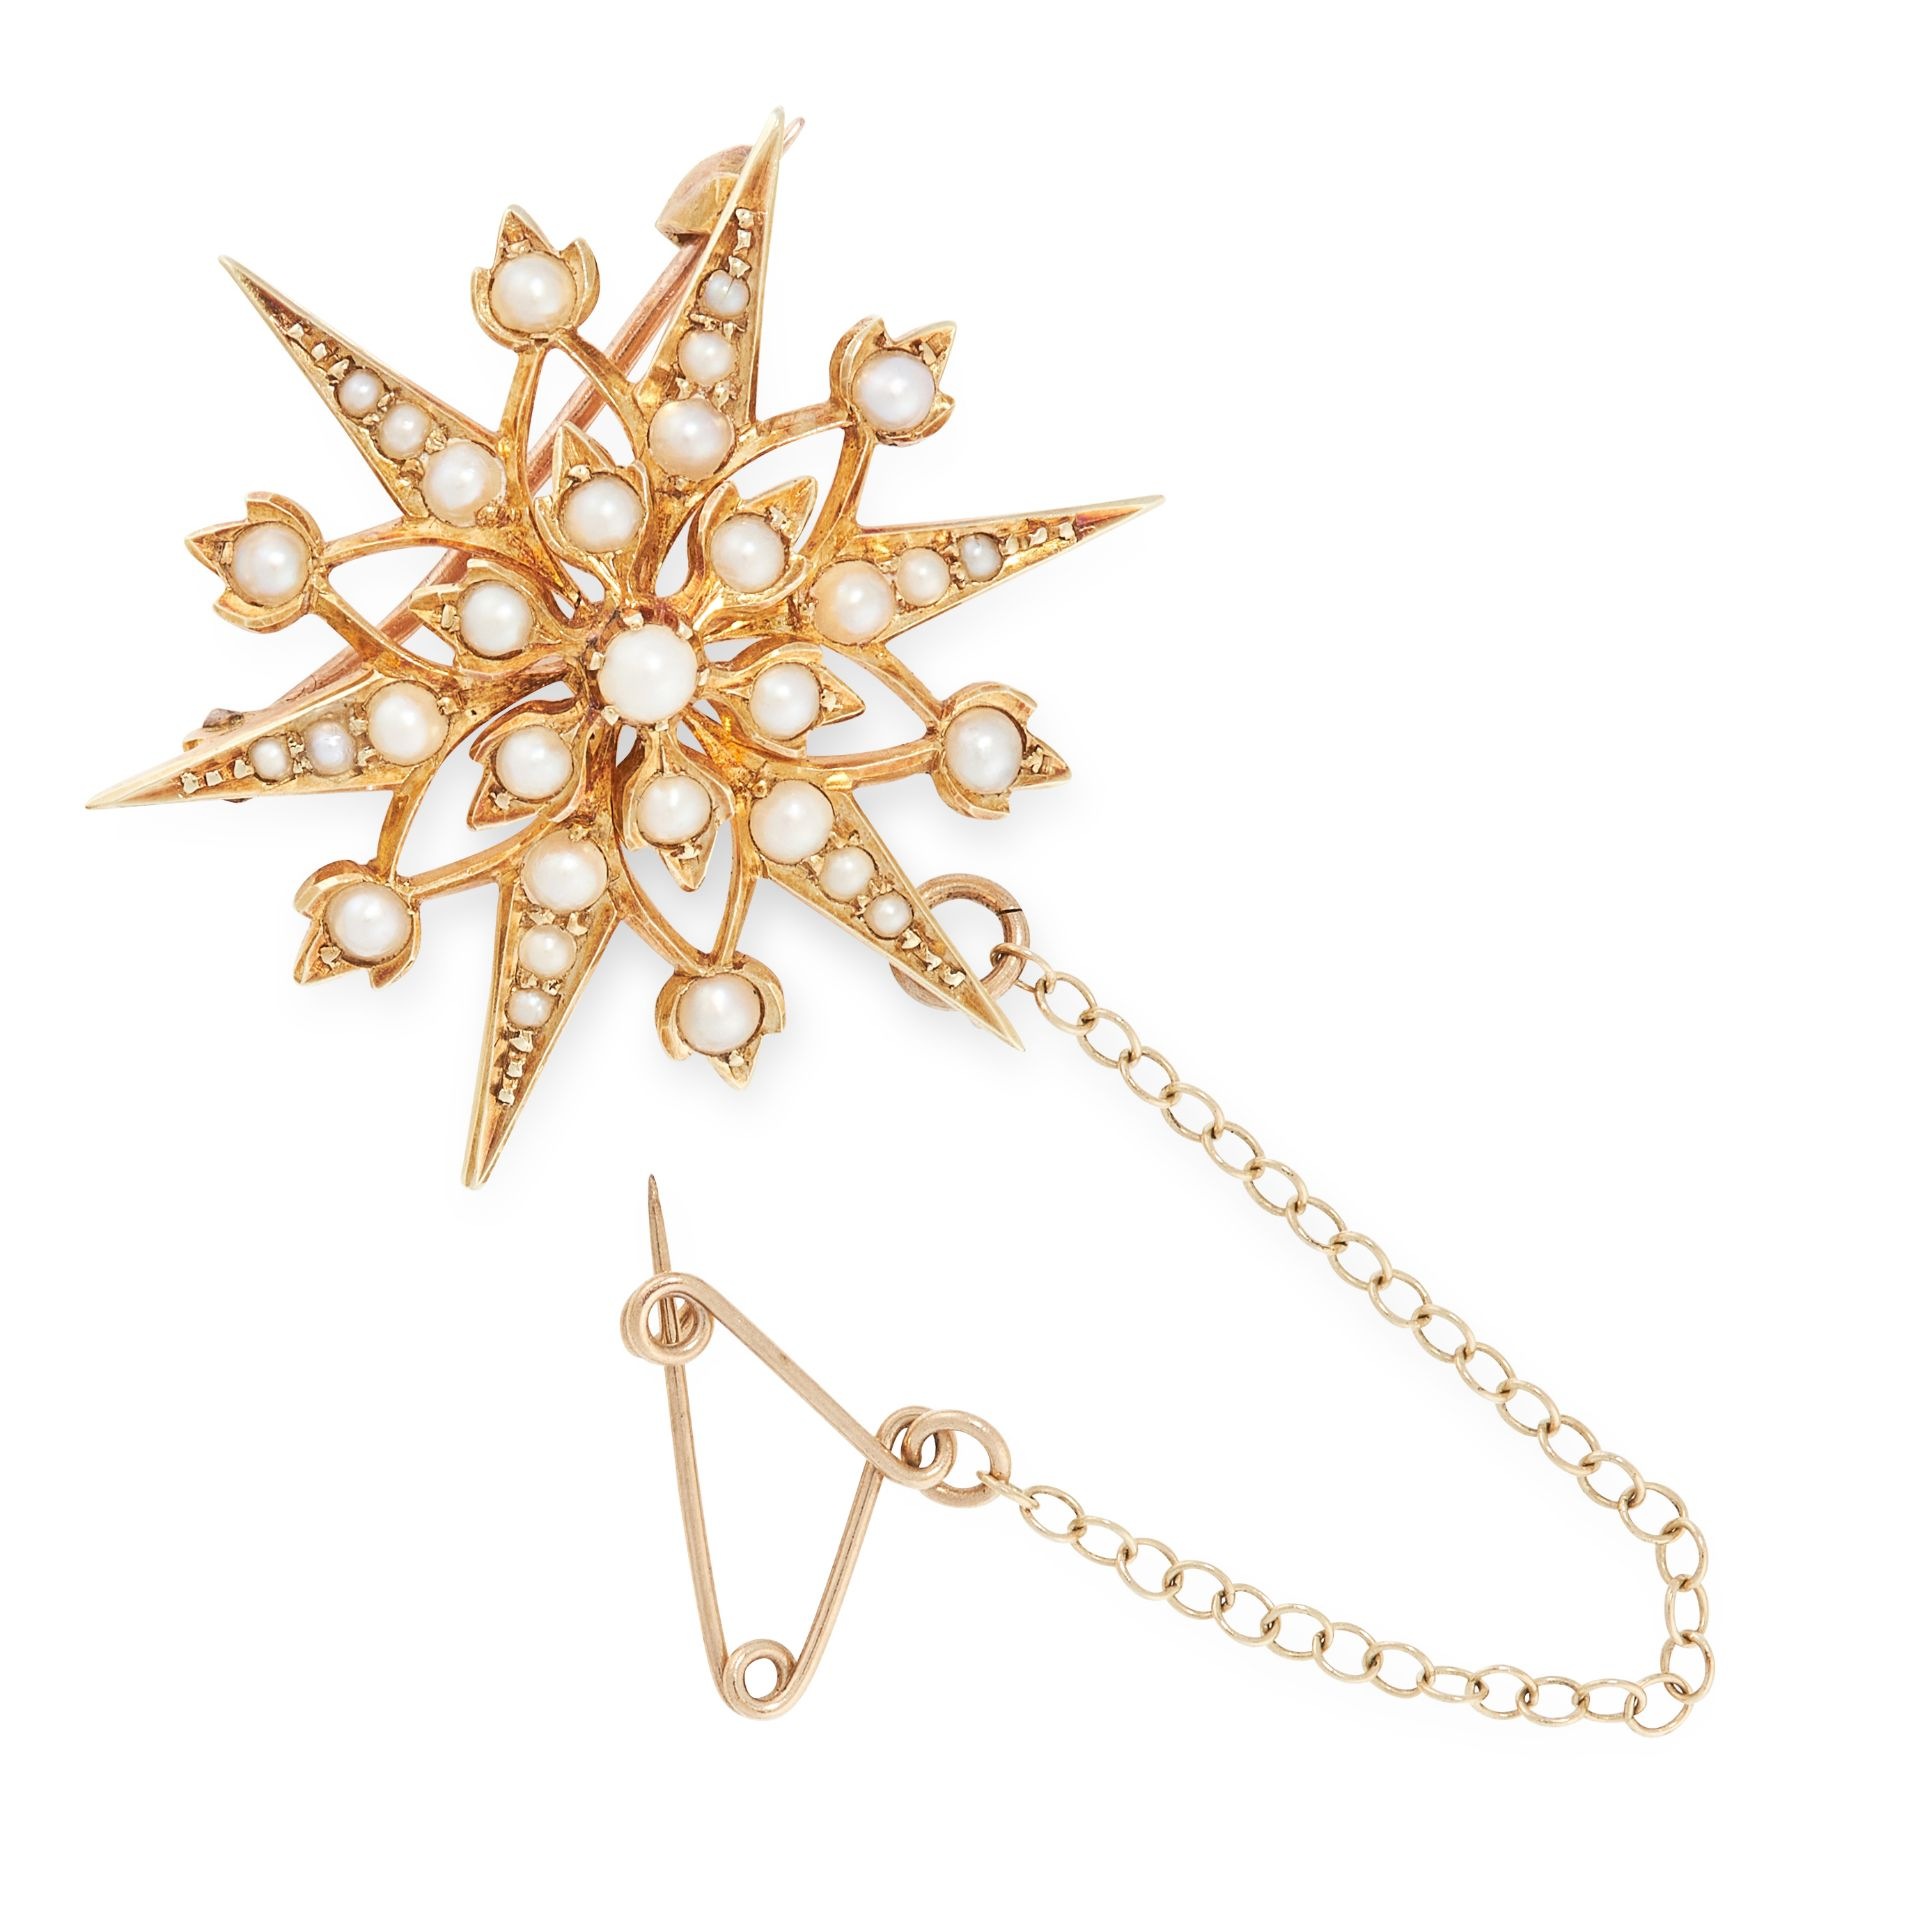 AN ANTIQUE VICTORIAN PEARL STAR BROOCH in 15ct yellow gold, in foliate and star design, set with